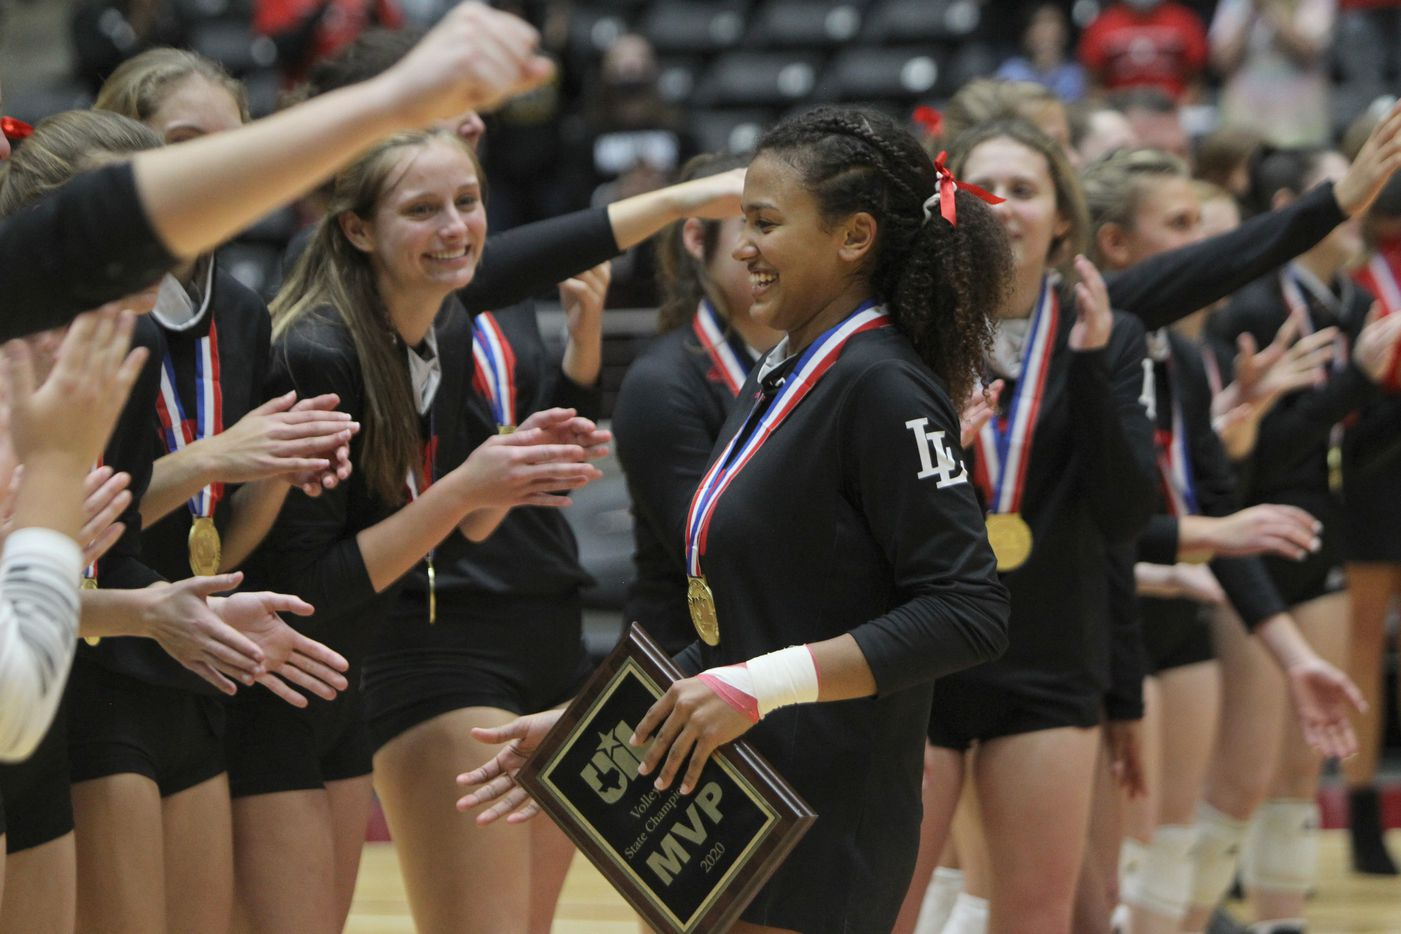 Lovejoy's Cecily Bramschreiber (5) was welcomed with open arms by her teammates after she was named MVP in the state 5A final for the 2nd consecutive year following the team's victory over Lamar Fulshear to claim the state title capping their perfect season. The two teams played their Class 5A state championship volleyball match at Curtis Culwell Center in Garland on December 12, 2020. (Steve Hamm/ Special Contributor)